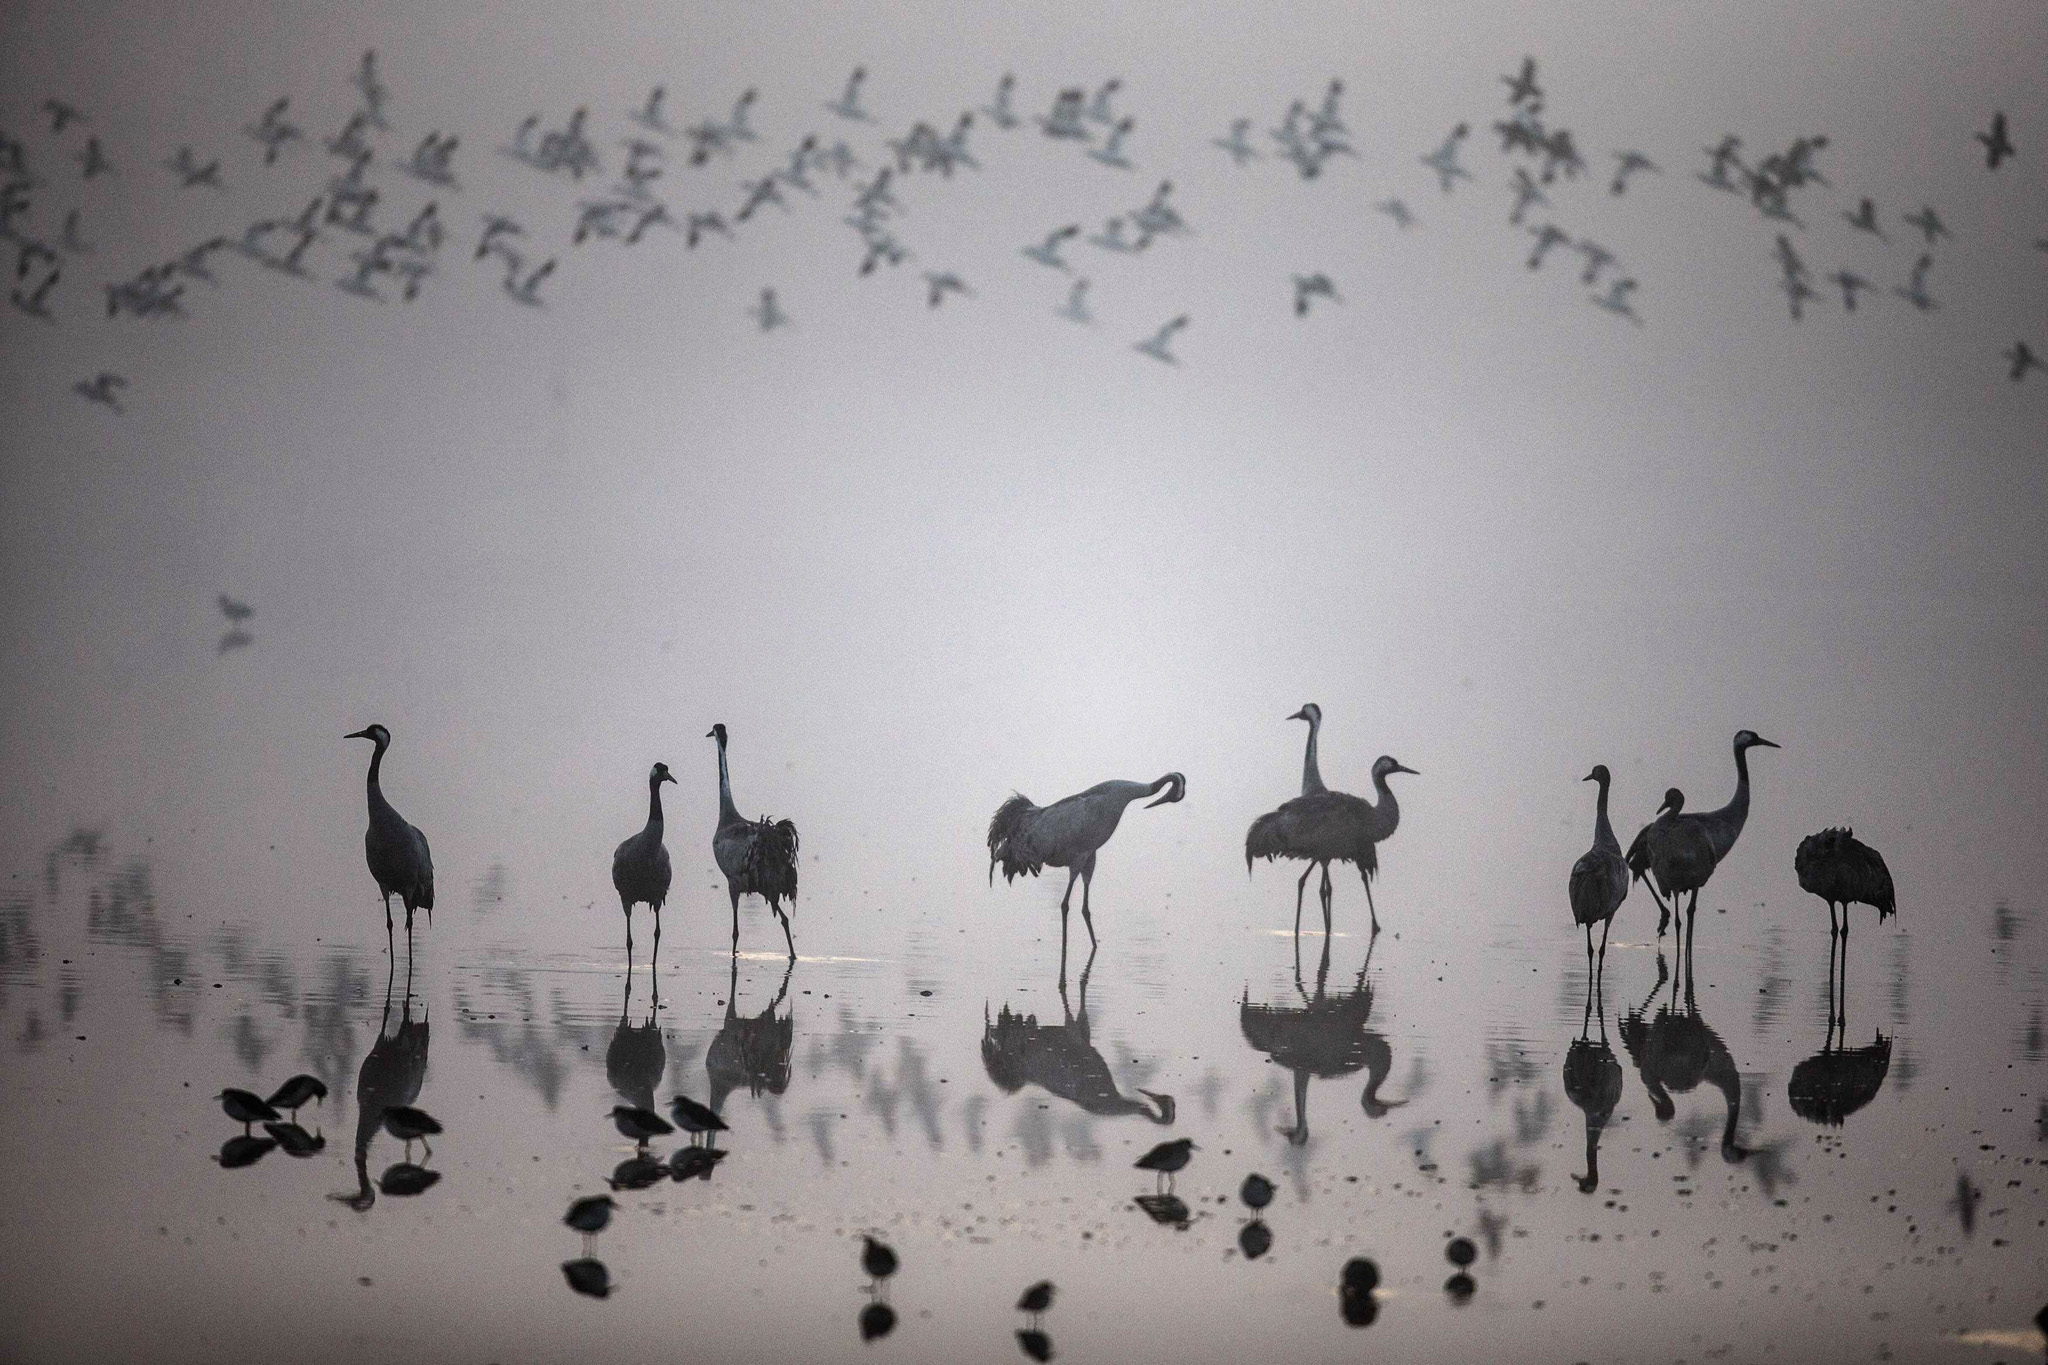 A flock of migrating cranes is seen at the Hula Lake Ornithology and Nature Park in northern Israel...A flock of migrating cranes is seen at the Hula Lake Ornithology and Nature Park in northern Israel December 20, 2013. The Hula Valley is a stopping point for hundreds of species of birds along their migration route between the northern and southern hemispheres.